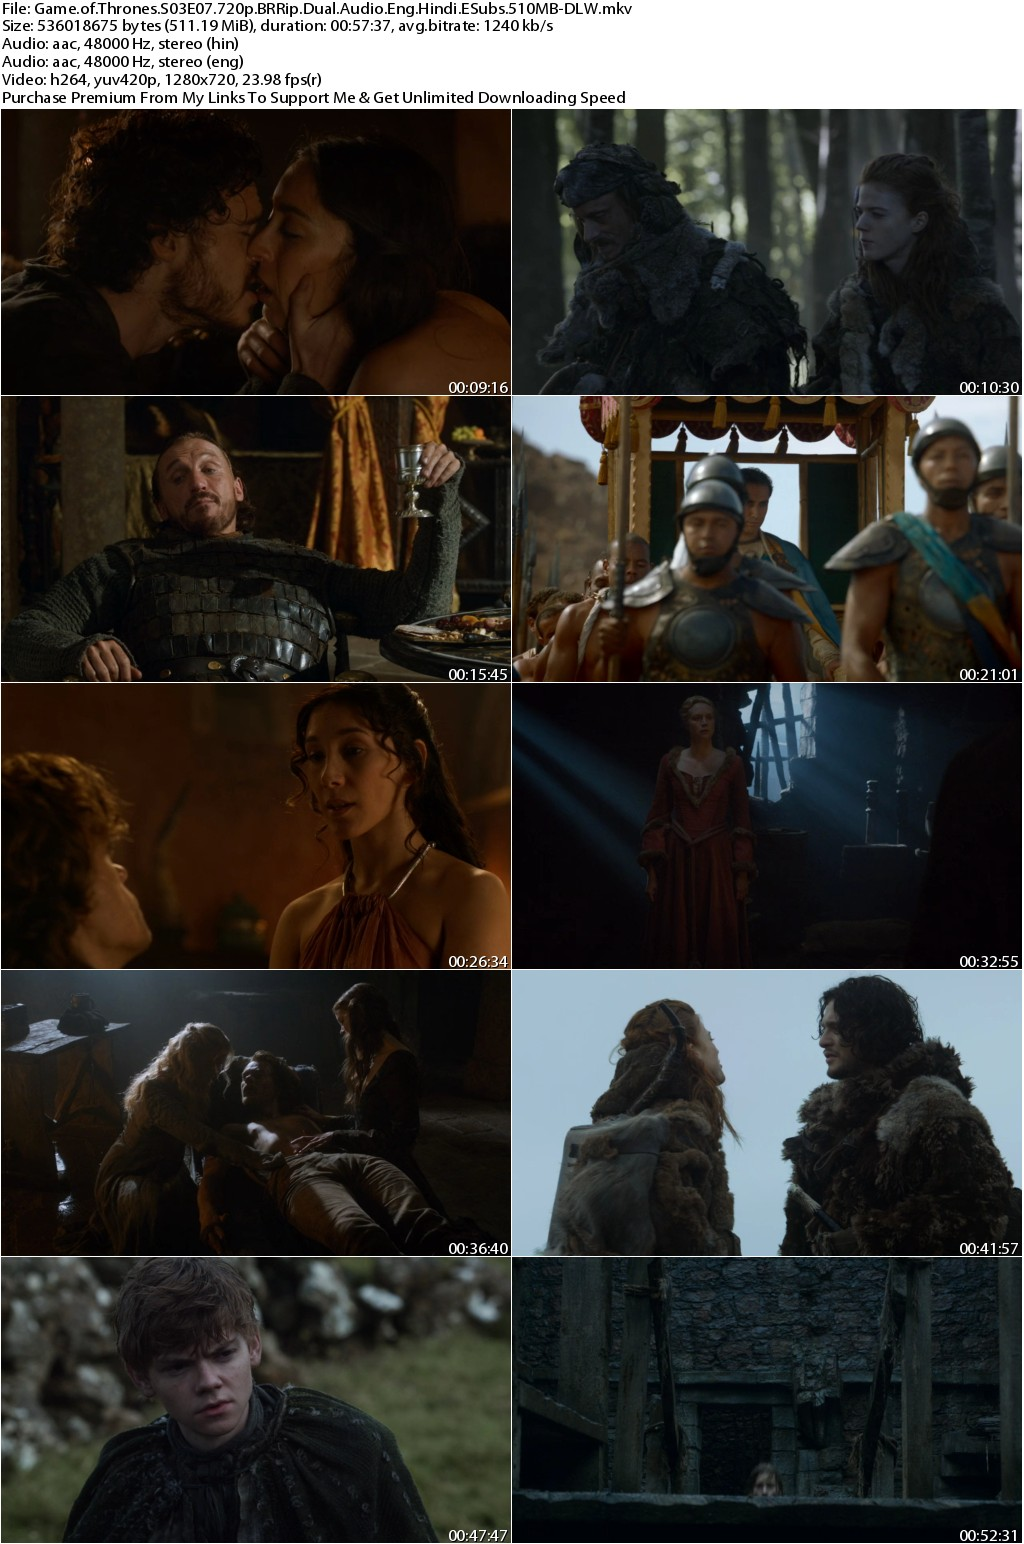 Game of Thrones S03E07 720p BRRip Dual Audio Eng Hindi ESubs 510MB-DLW